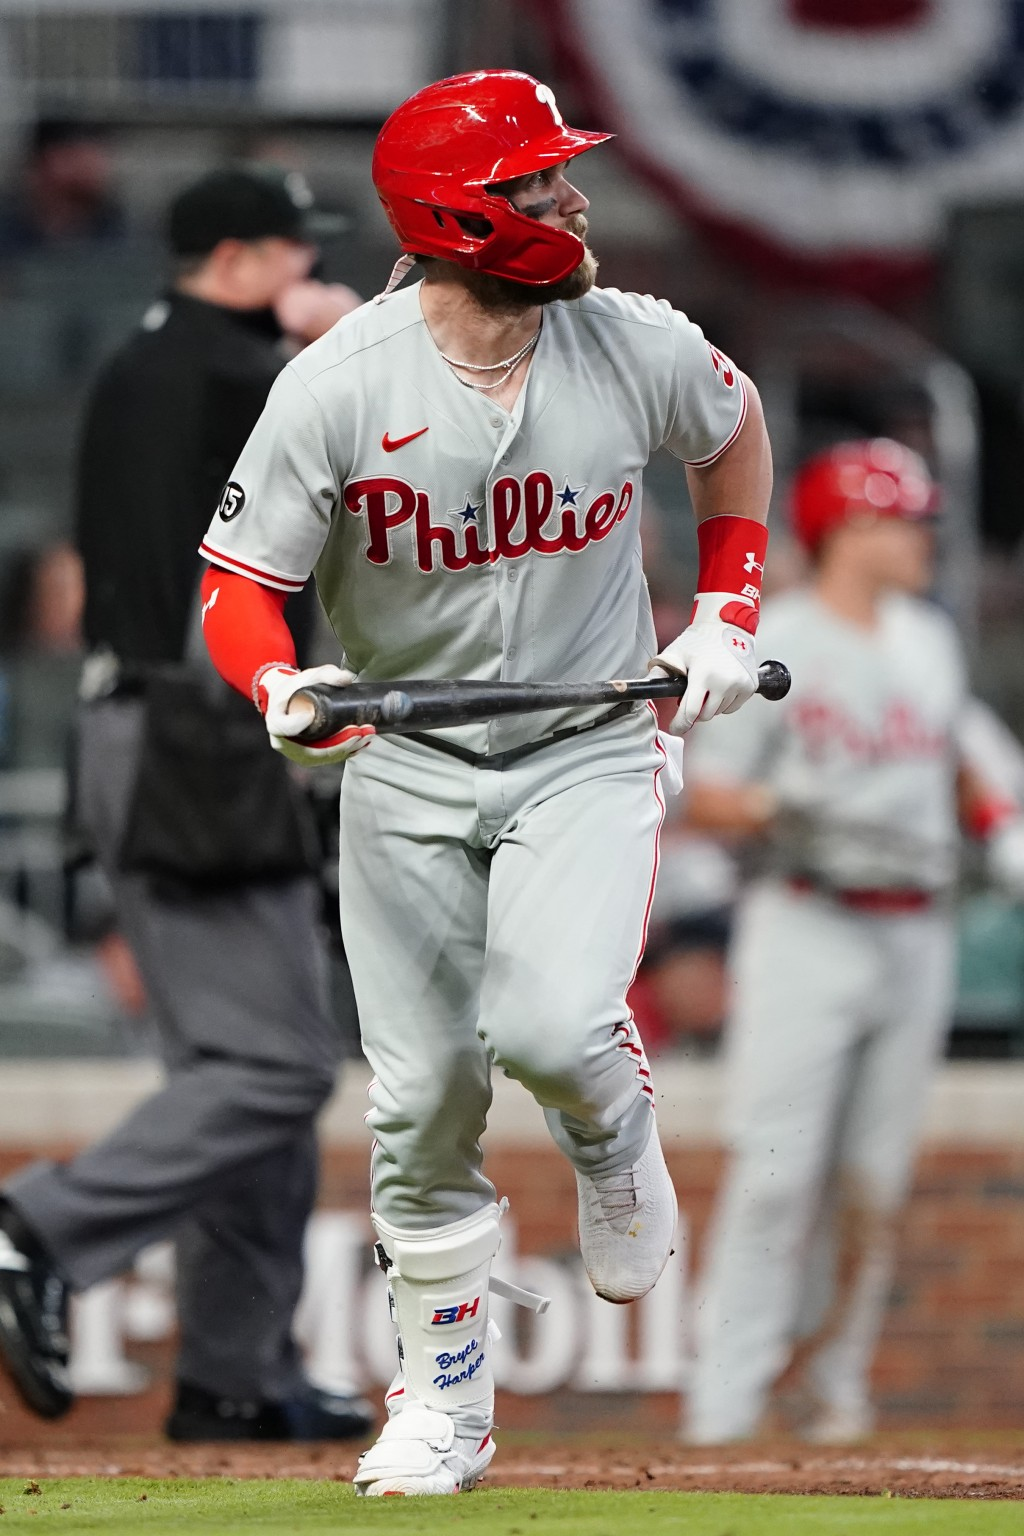 Philadelphia Phillies' Bryce Harper (3) runs to first after hitting a home run in the sixth inning of a baseball game against the Atlanta Braves Sunda...